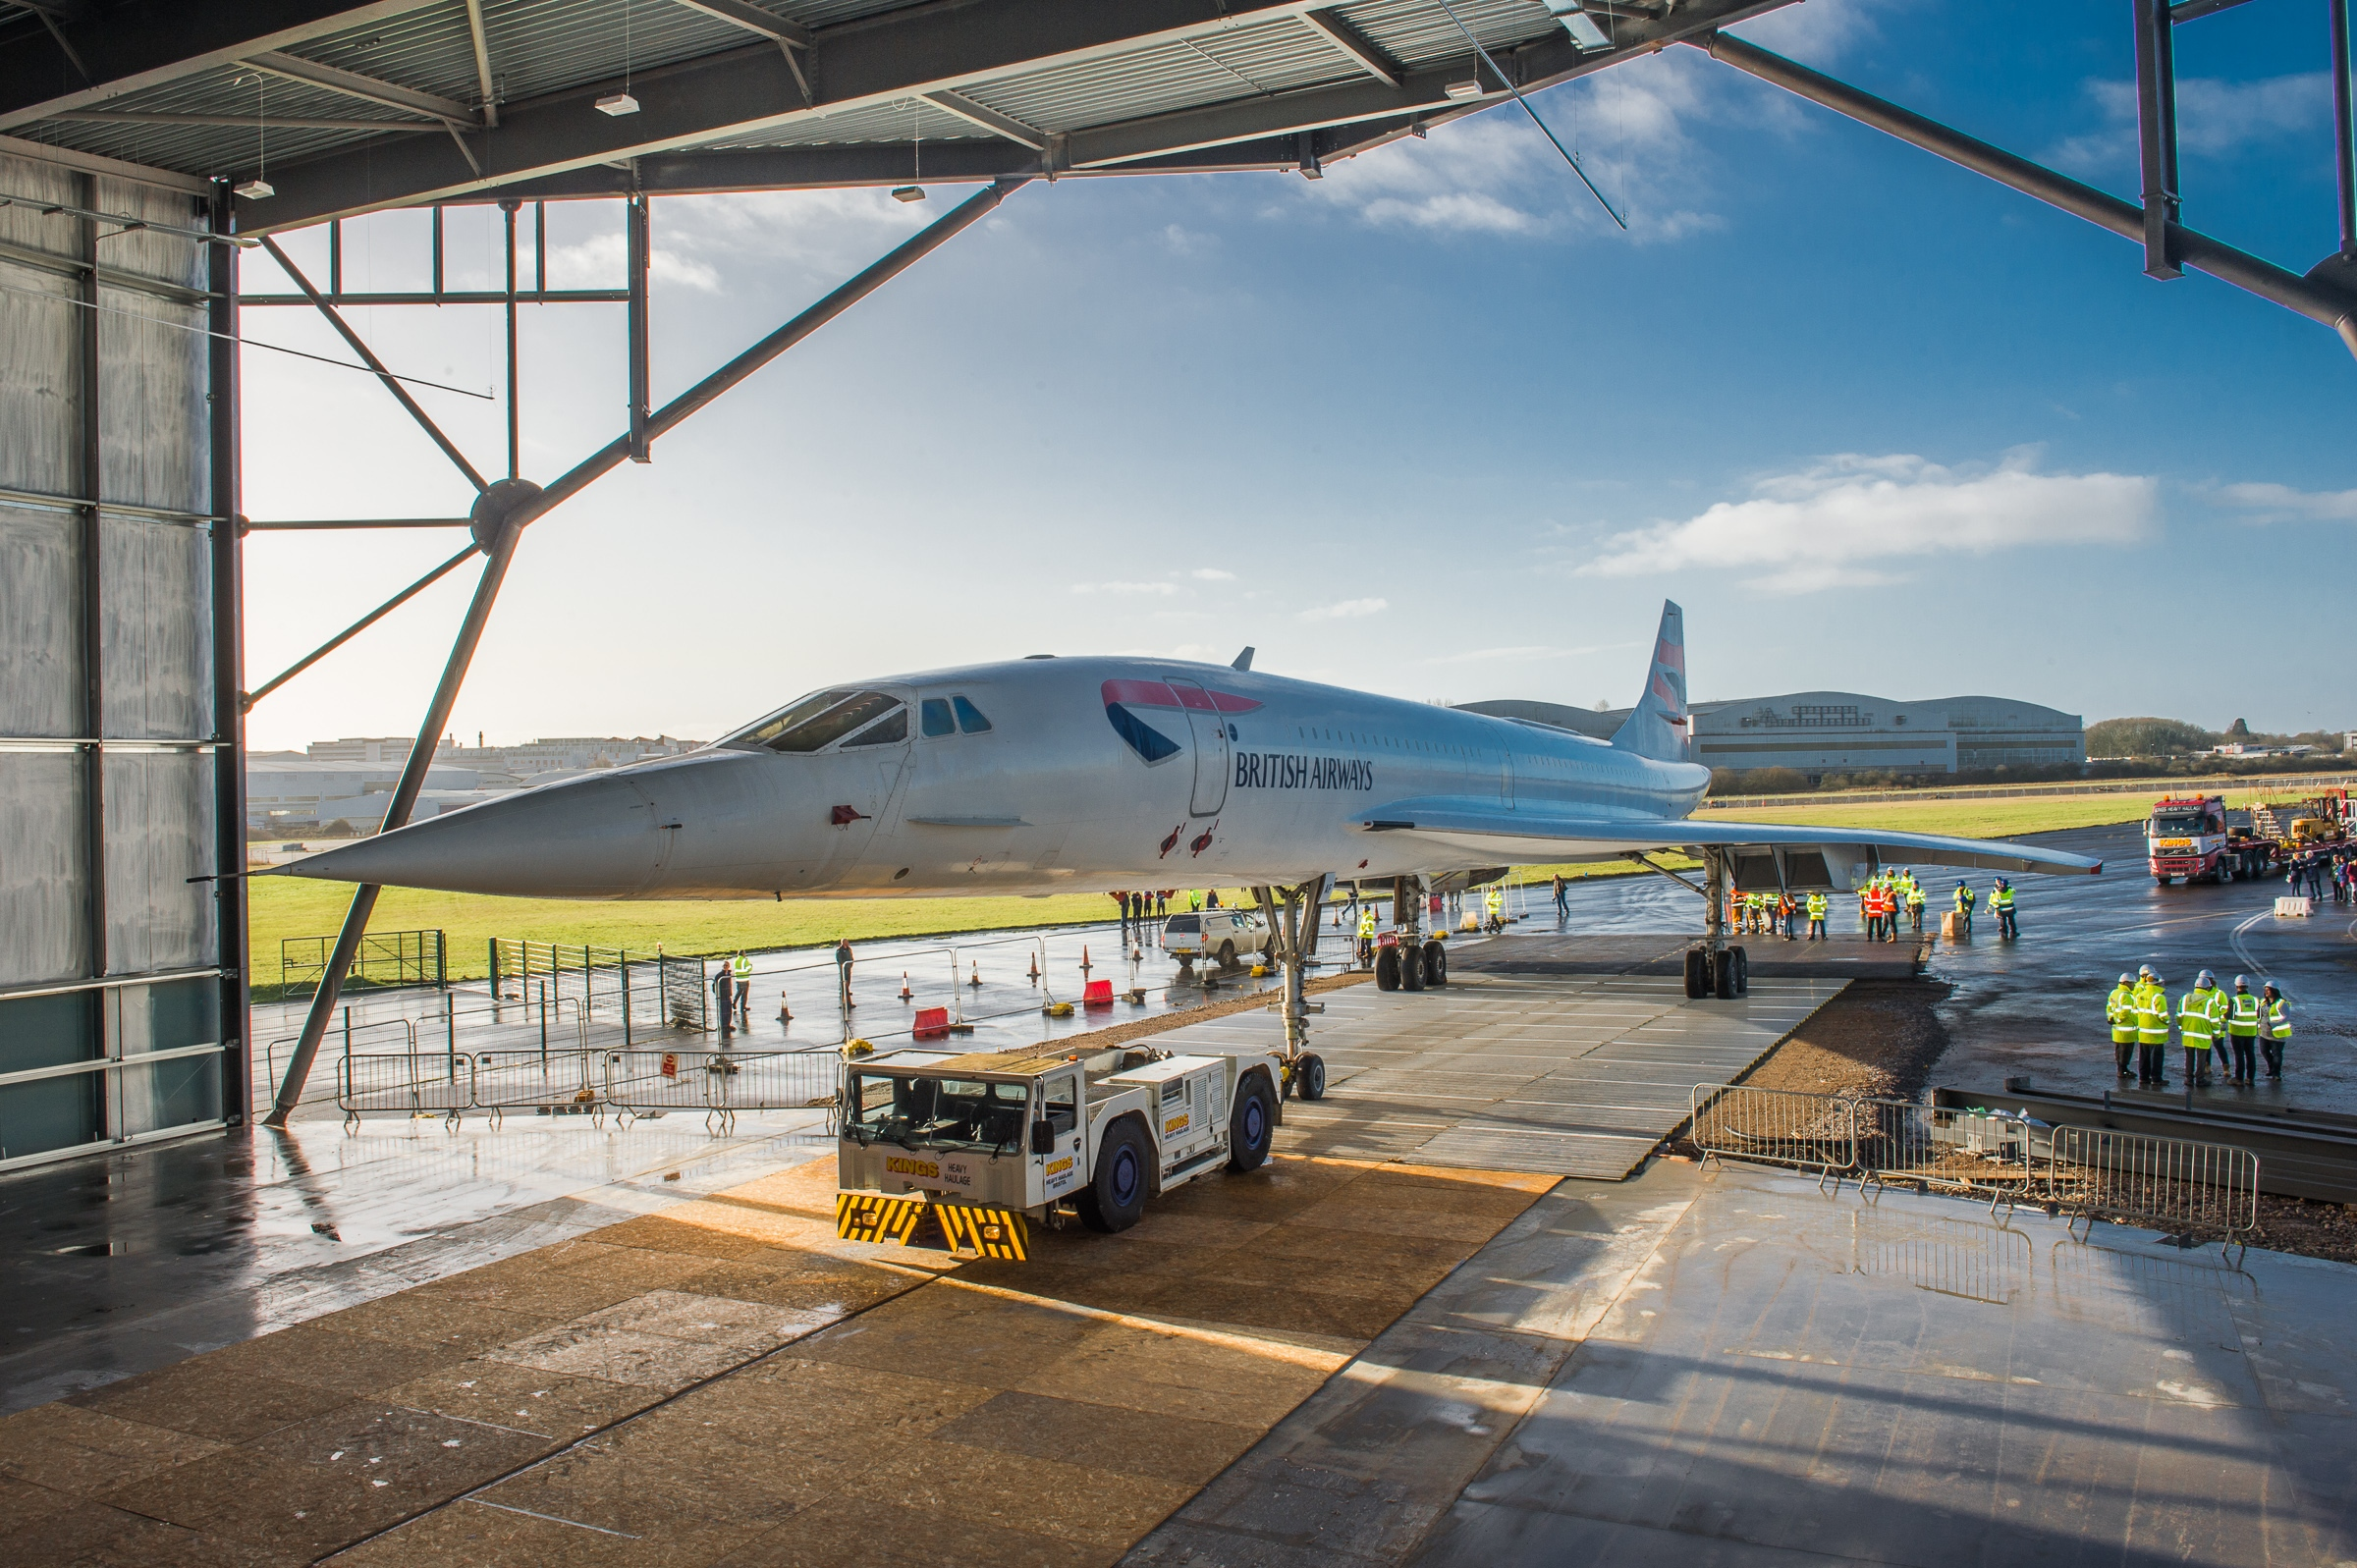 Concorde moving into the museum